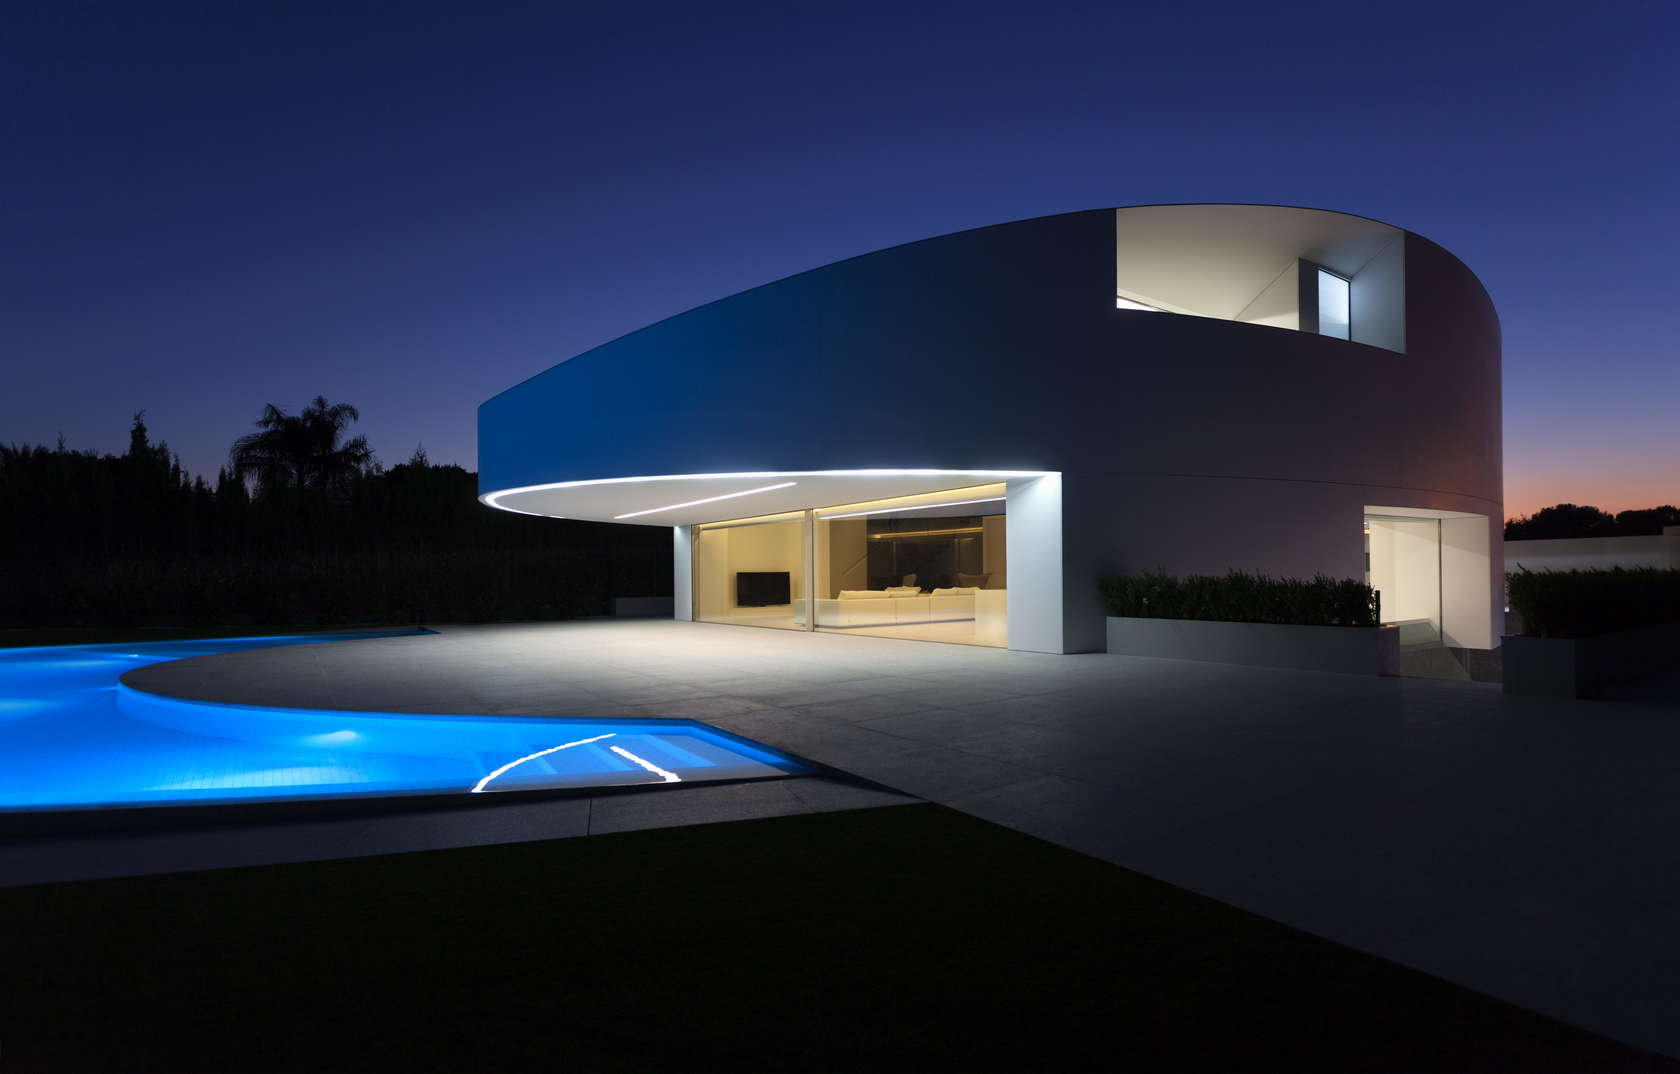 Ultra Modern Home - Golf course views and a striking exterior make for a modern marvel